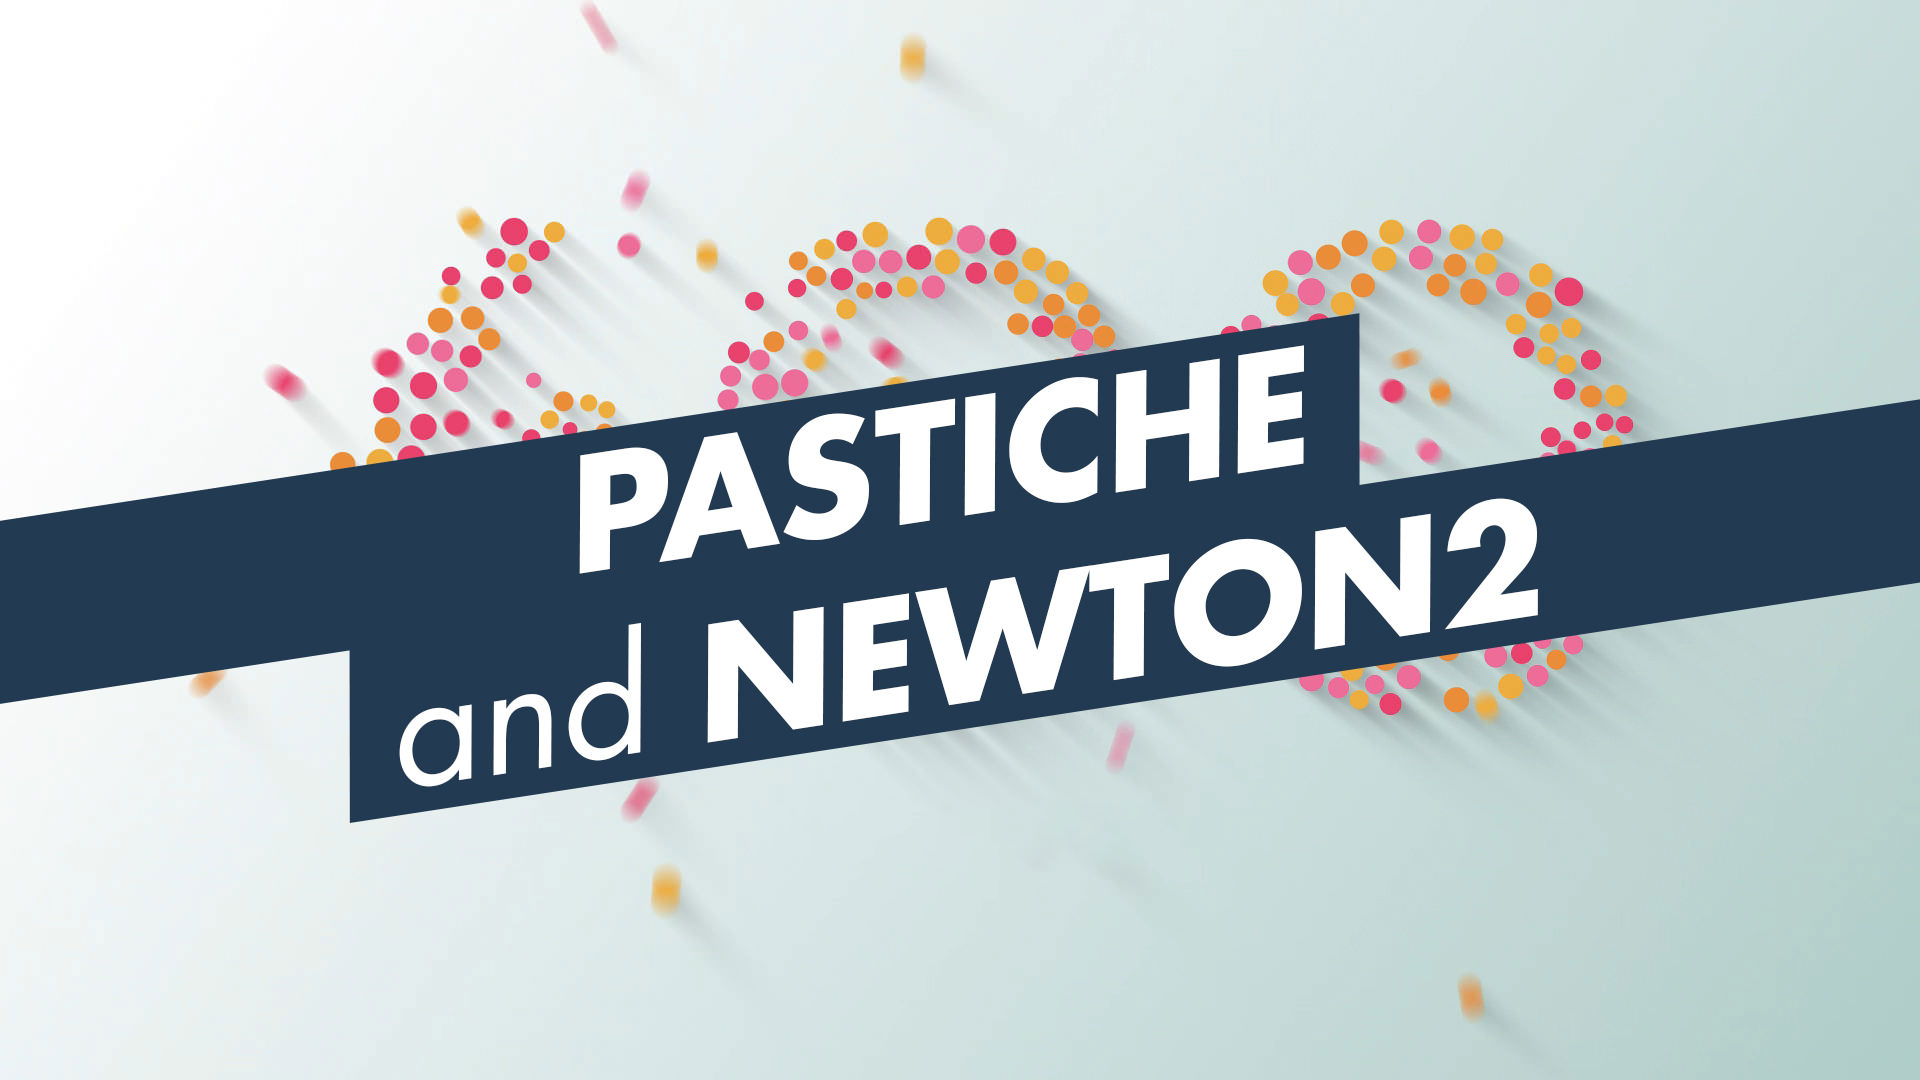 Create a dynamic explainer video using Pastiche and Newton2